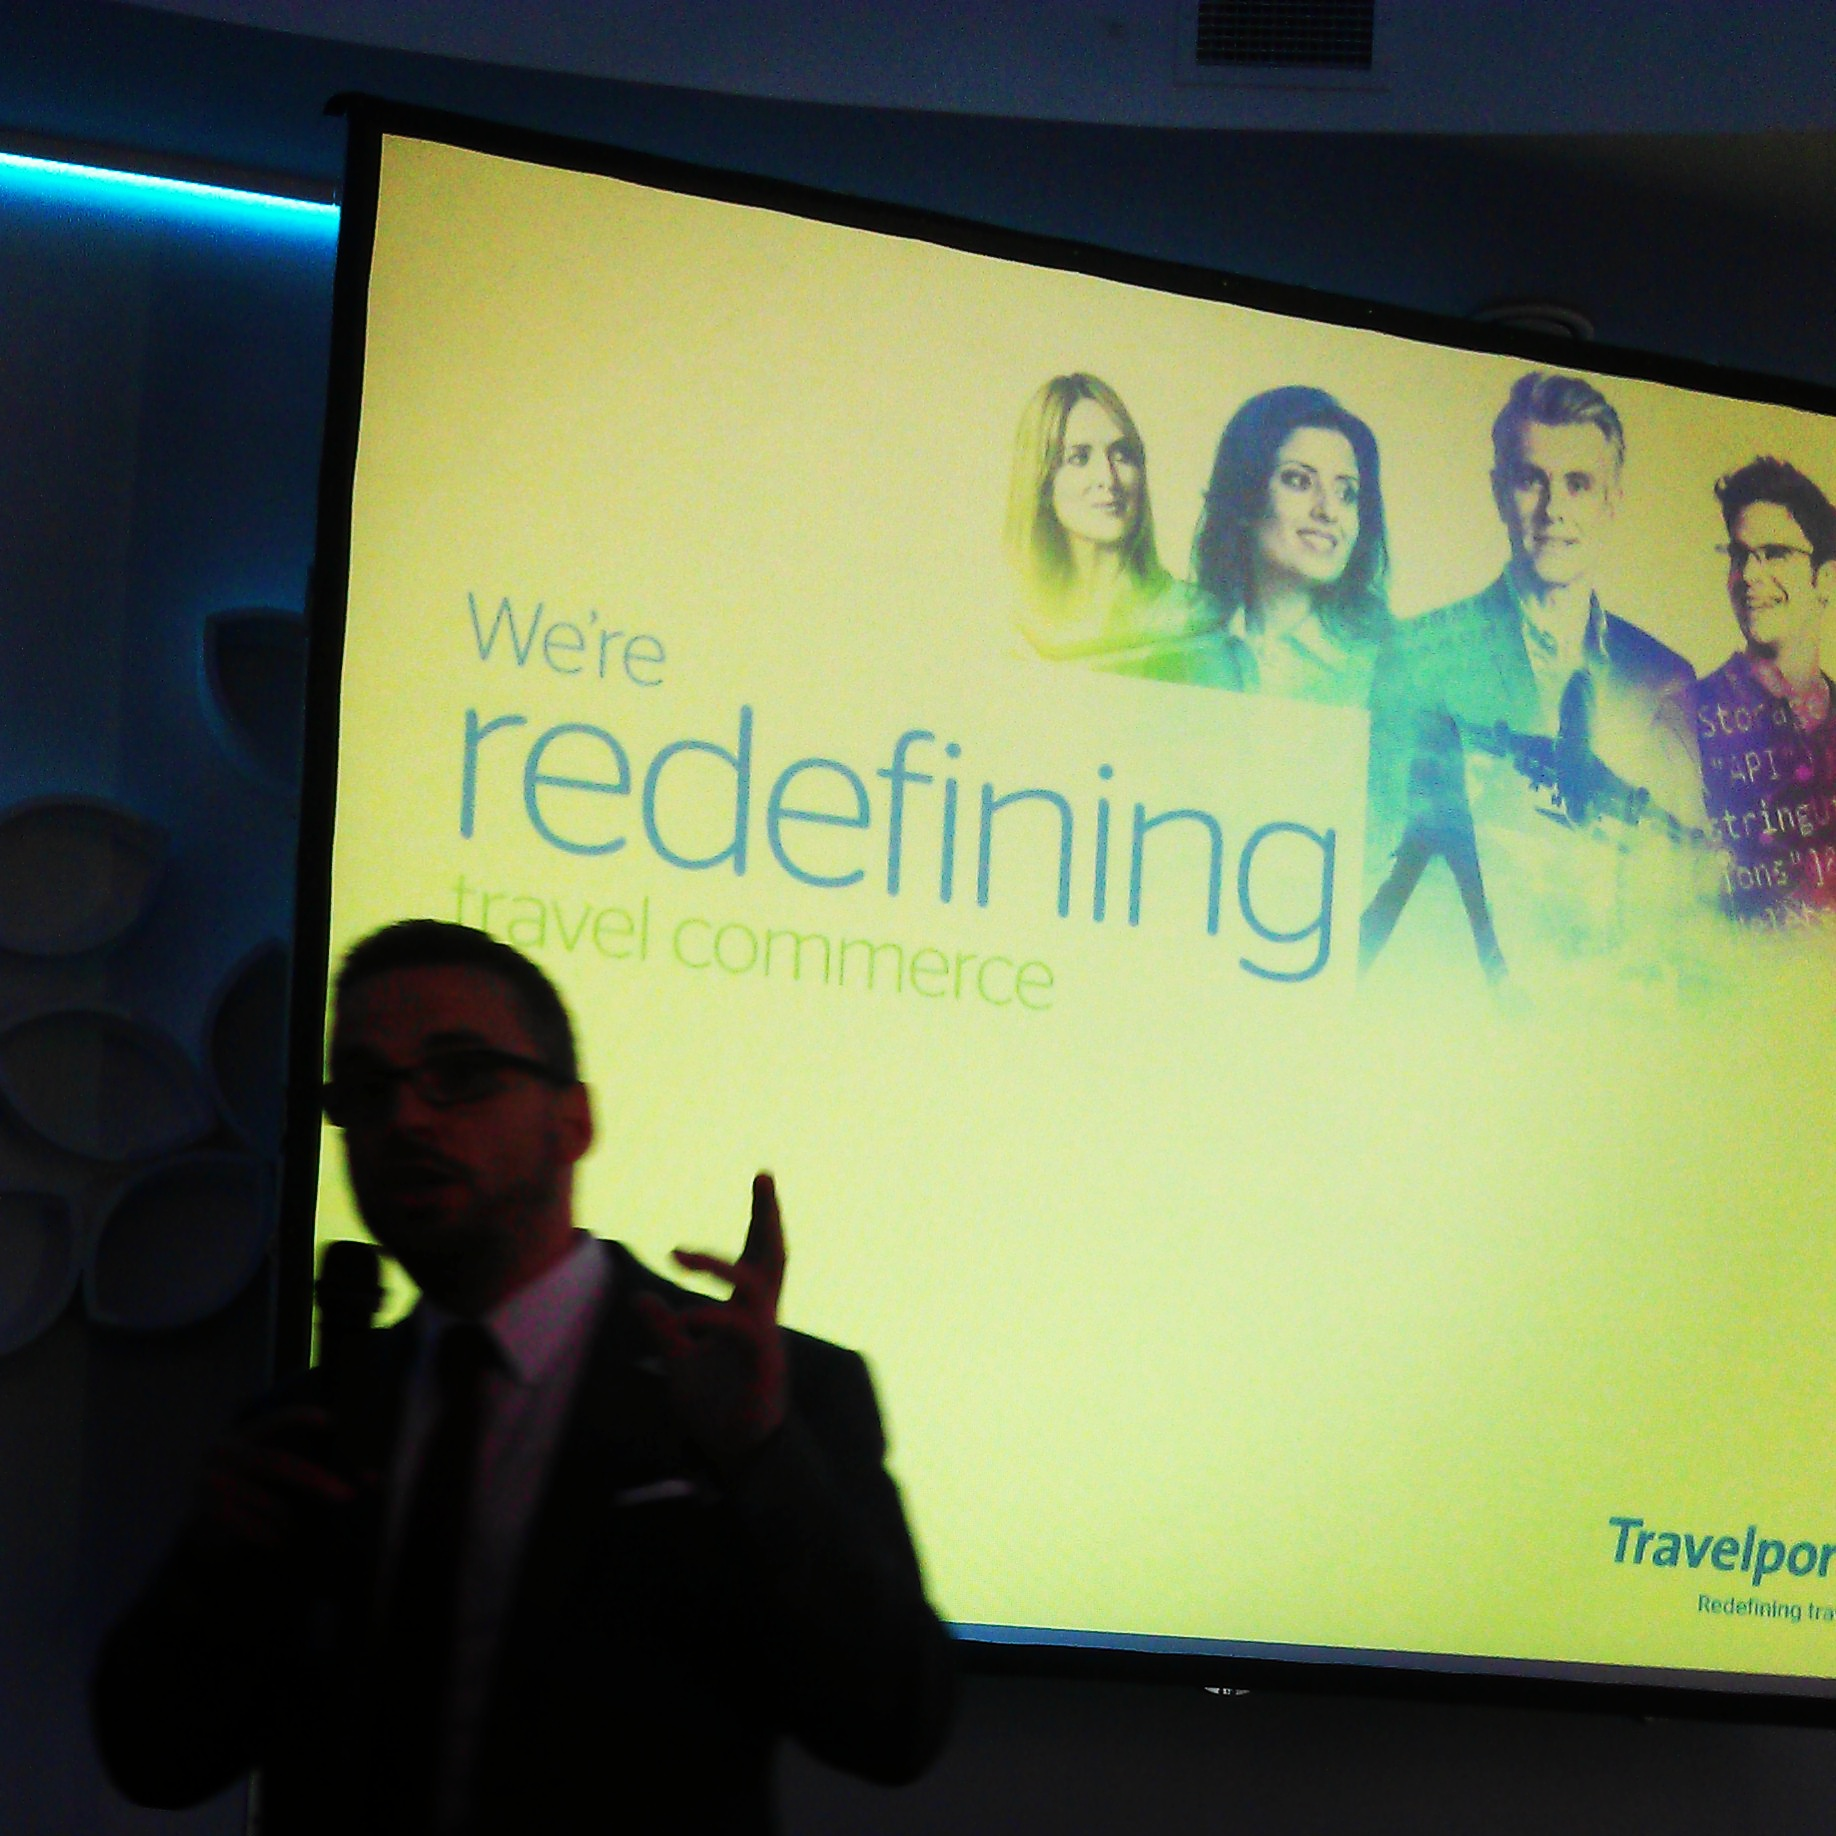 travelport, redefining travel commerce, branding